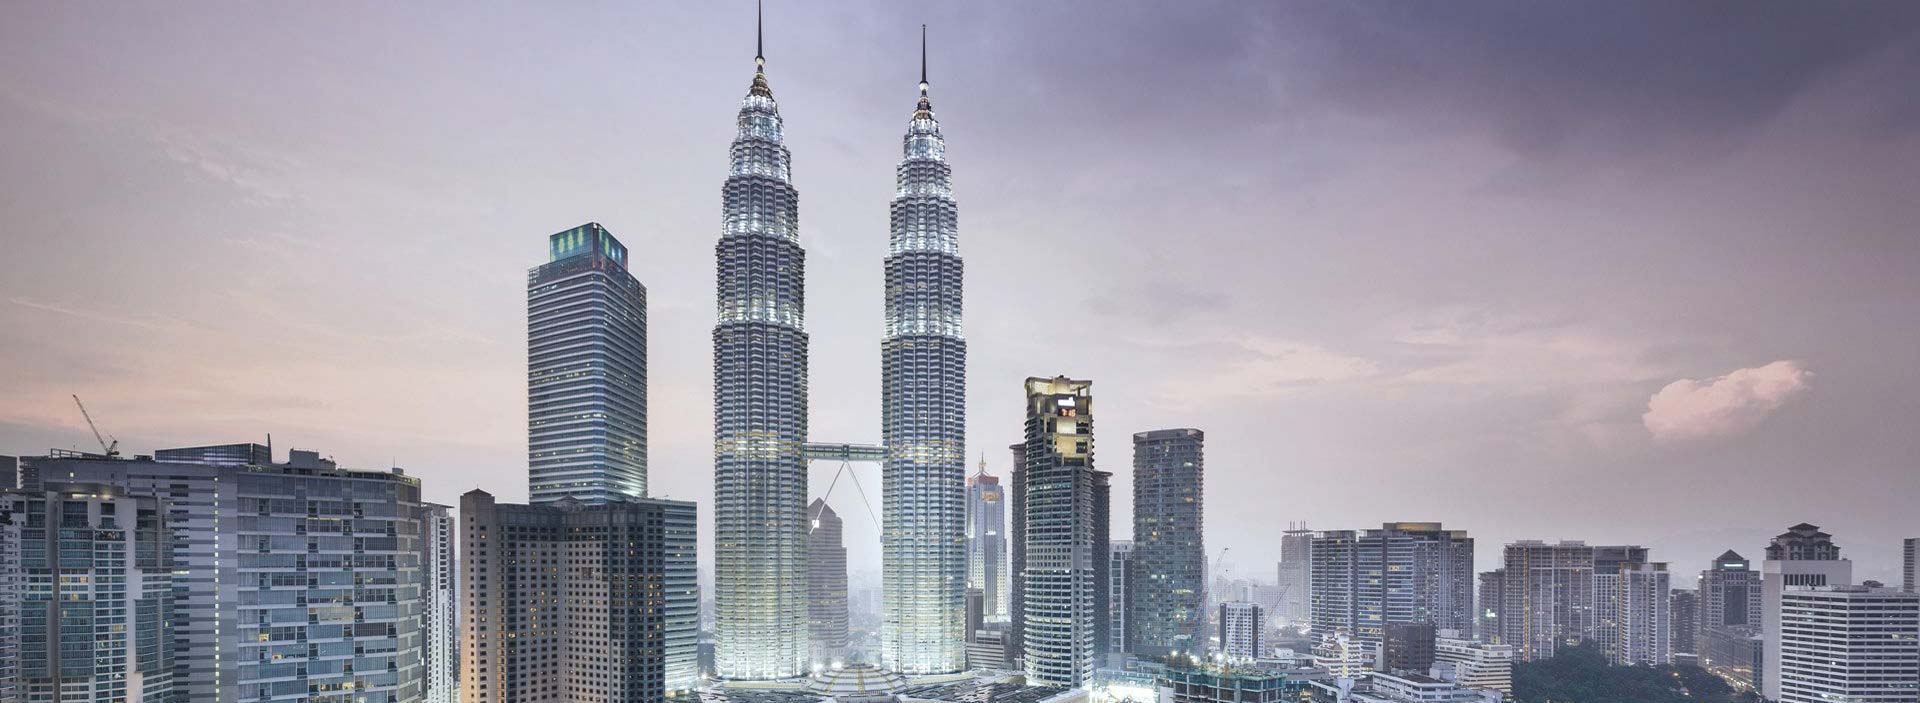 Engineering Petronas Towers and Kuala Lumpur City Centre- buildings